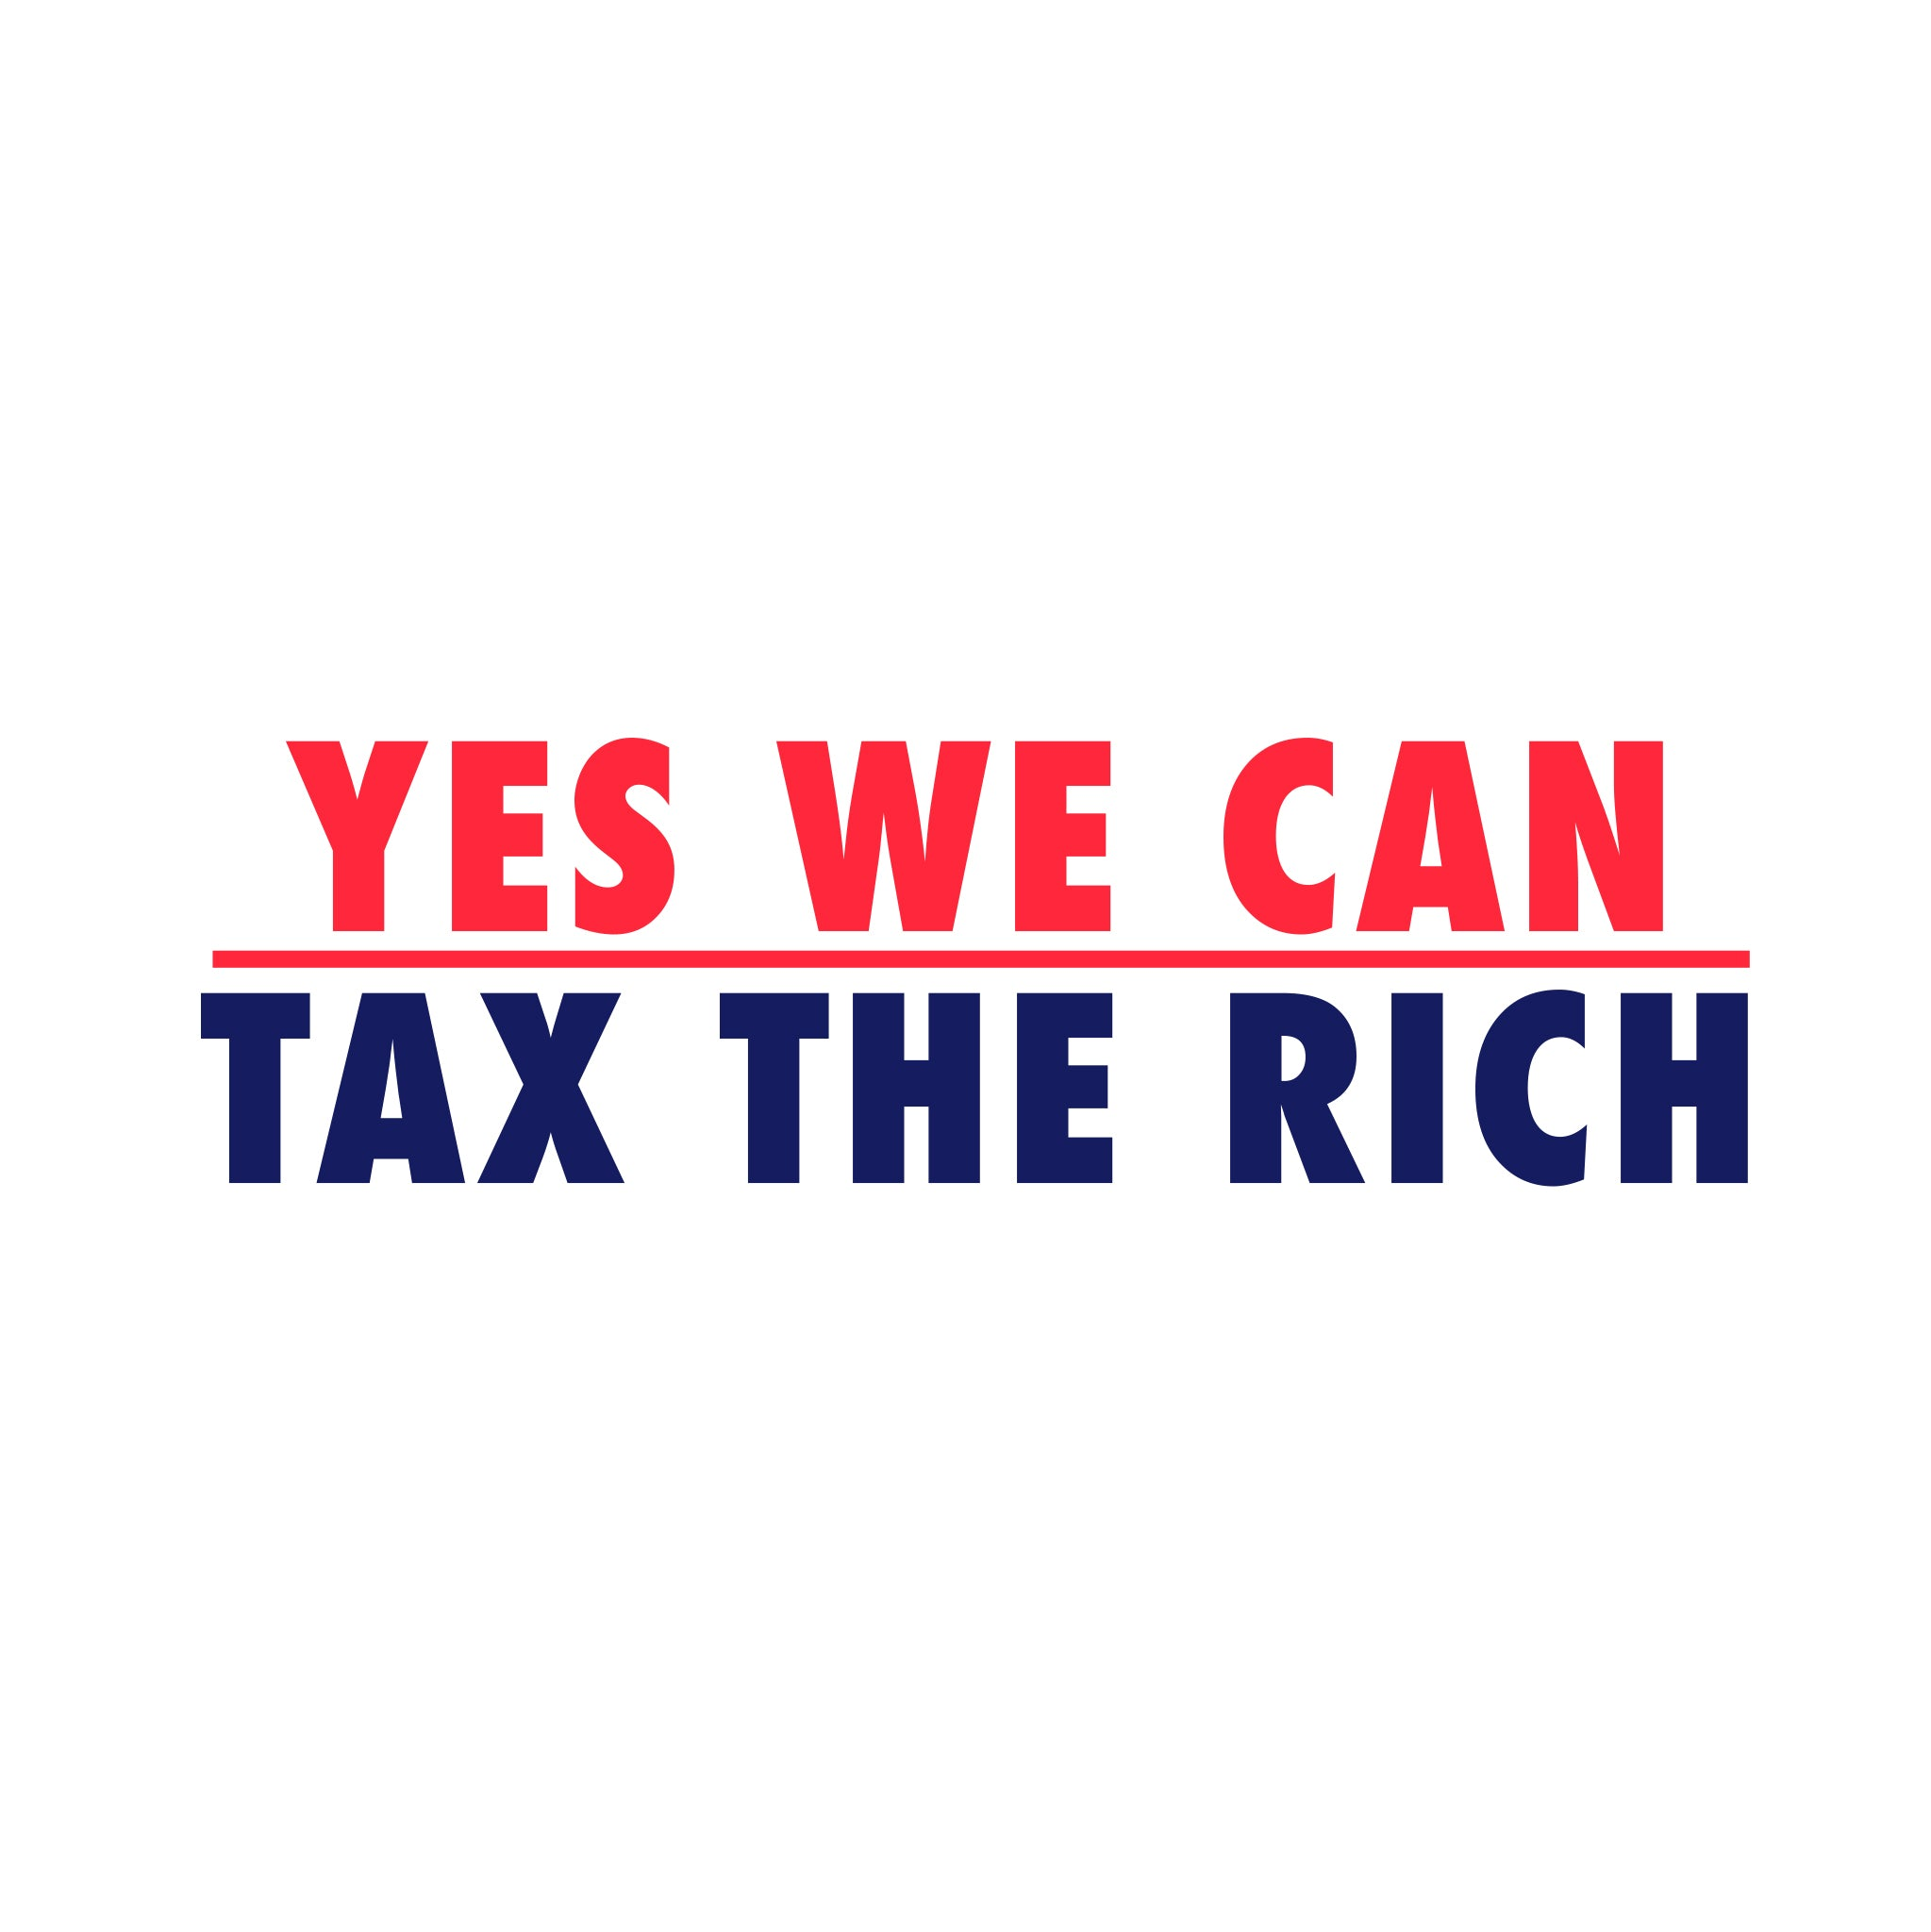 Yes we can tax the rich